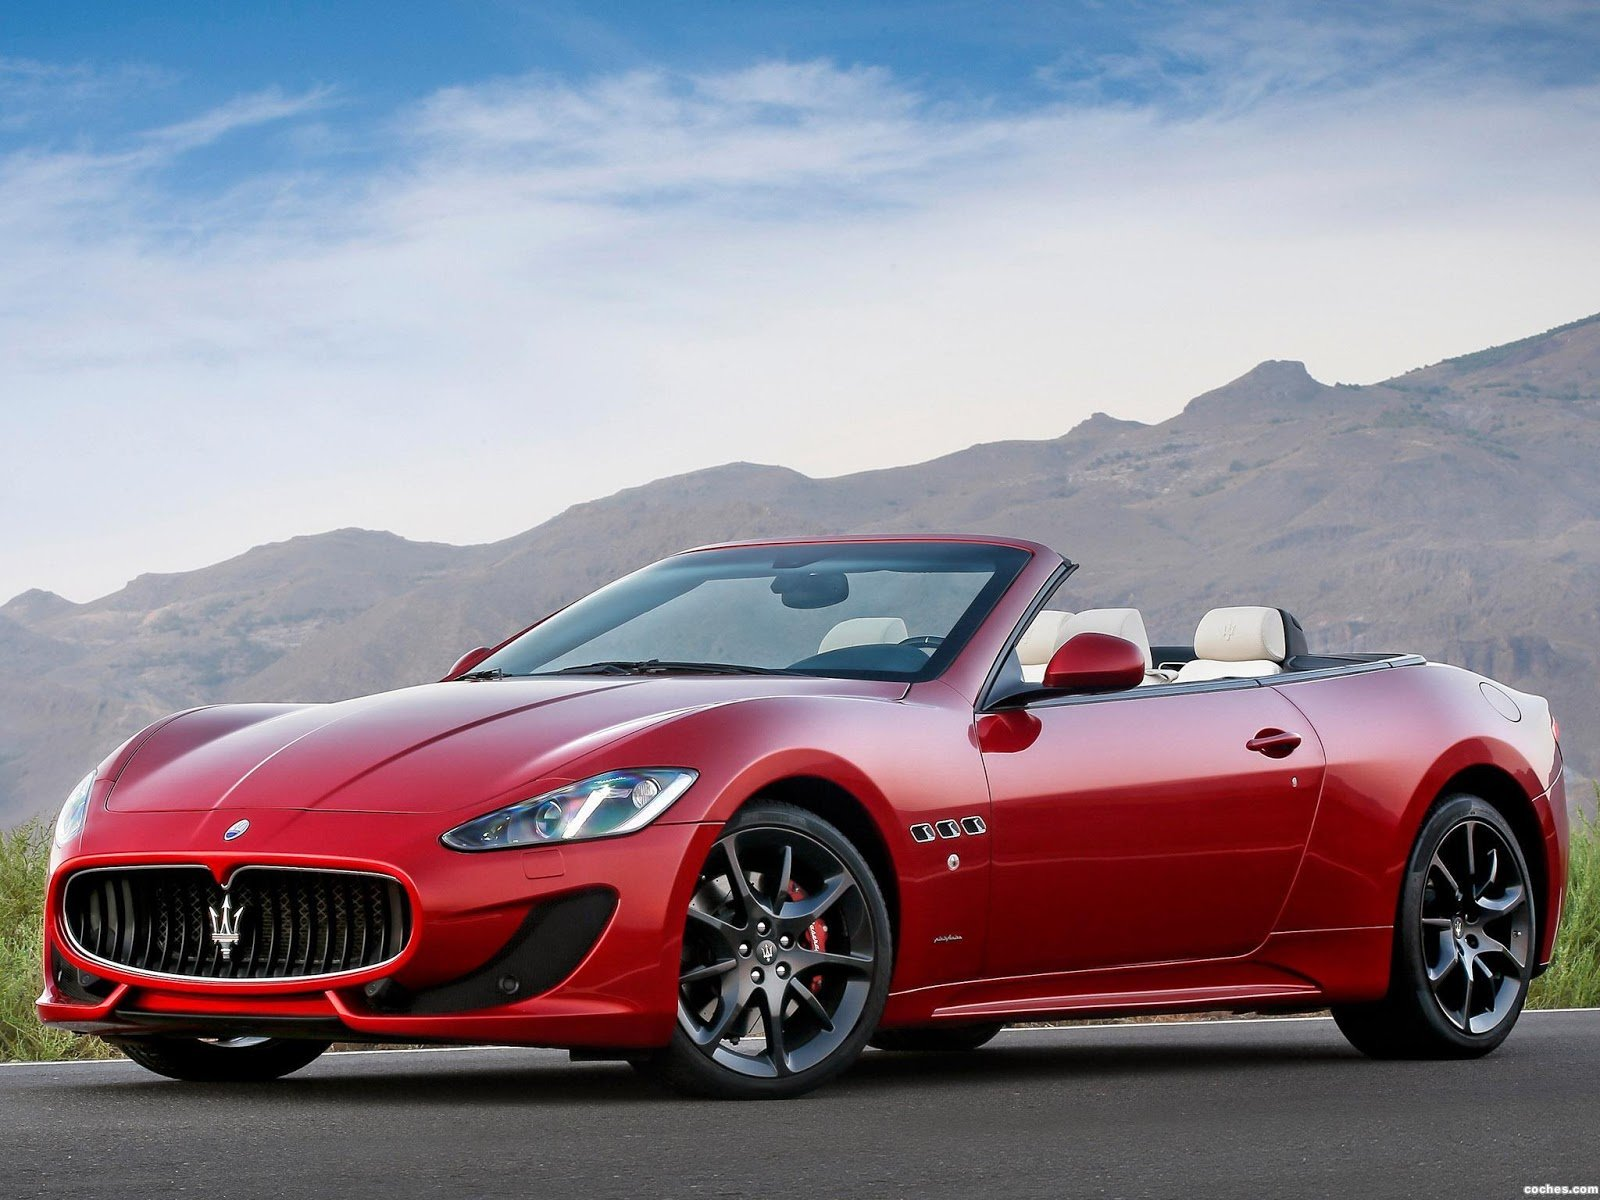 Latest 2013 Maserati Grancabrio Sport Auto Cars Concept Free Download